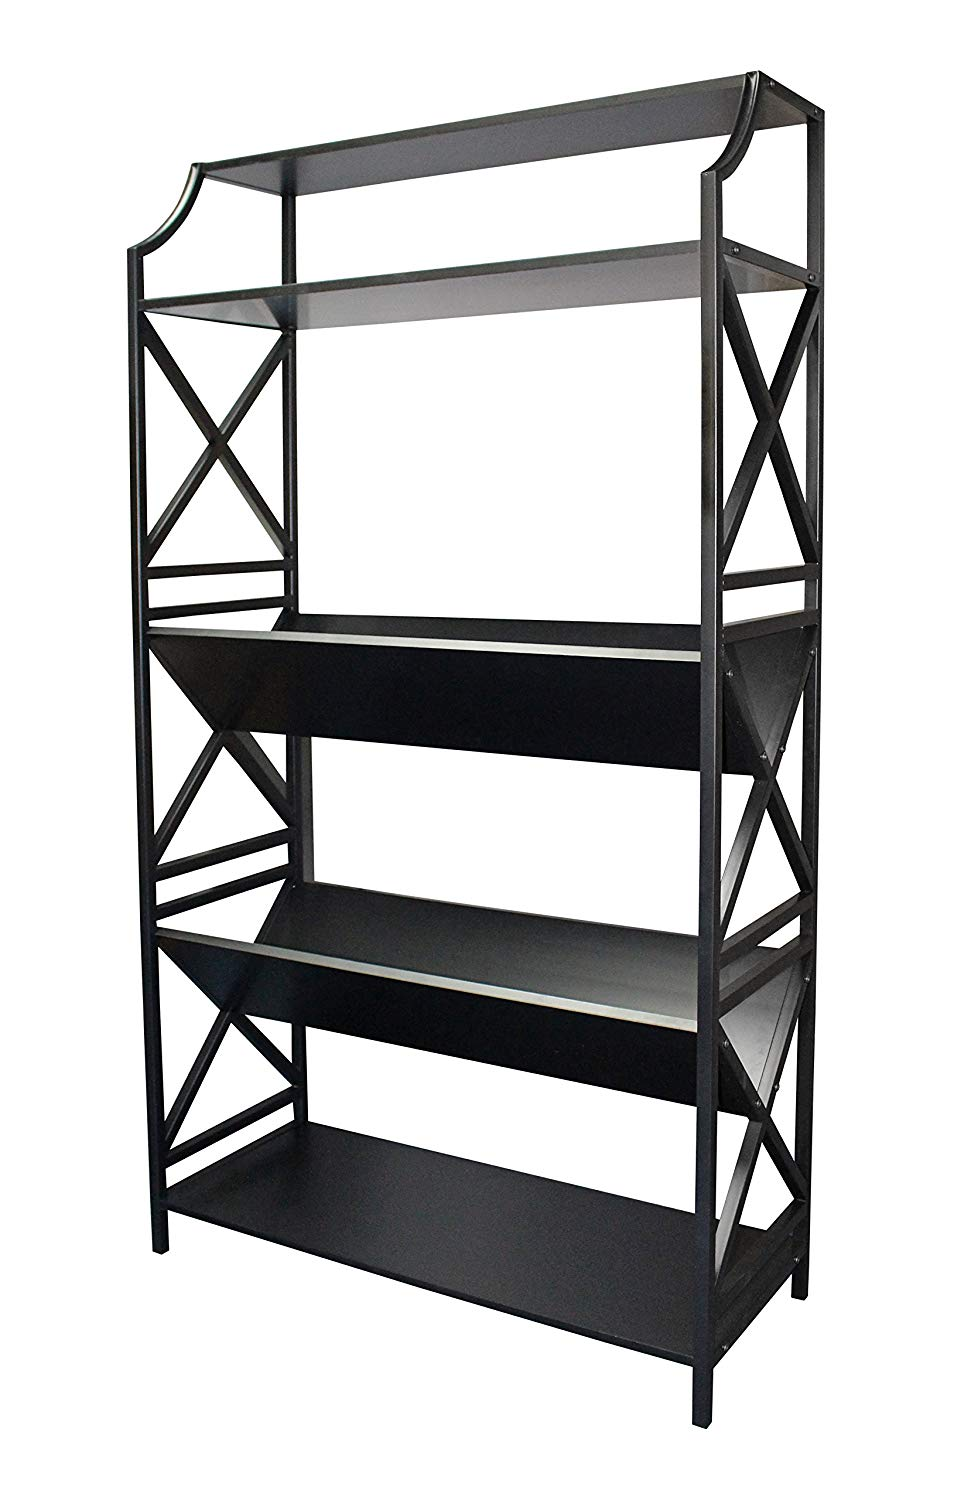 eHemco 5 shelf Metal Bookcase with 2 shelves on a slant (V-shaped) and x sides